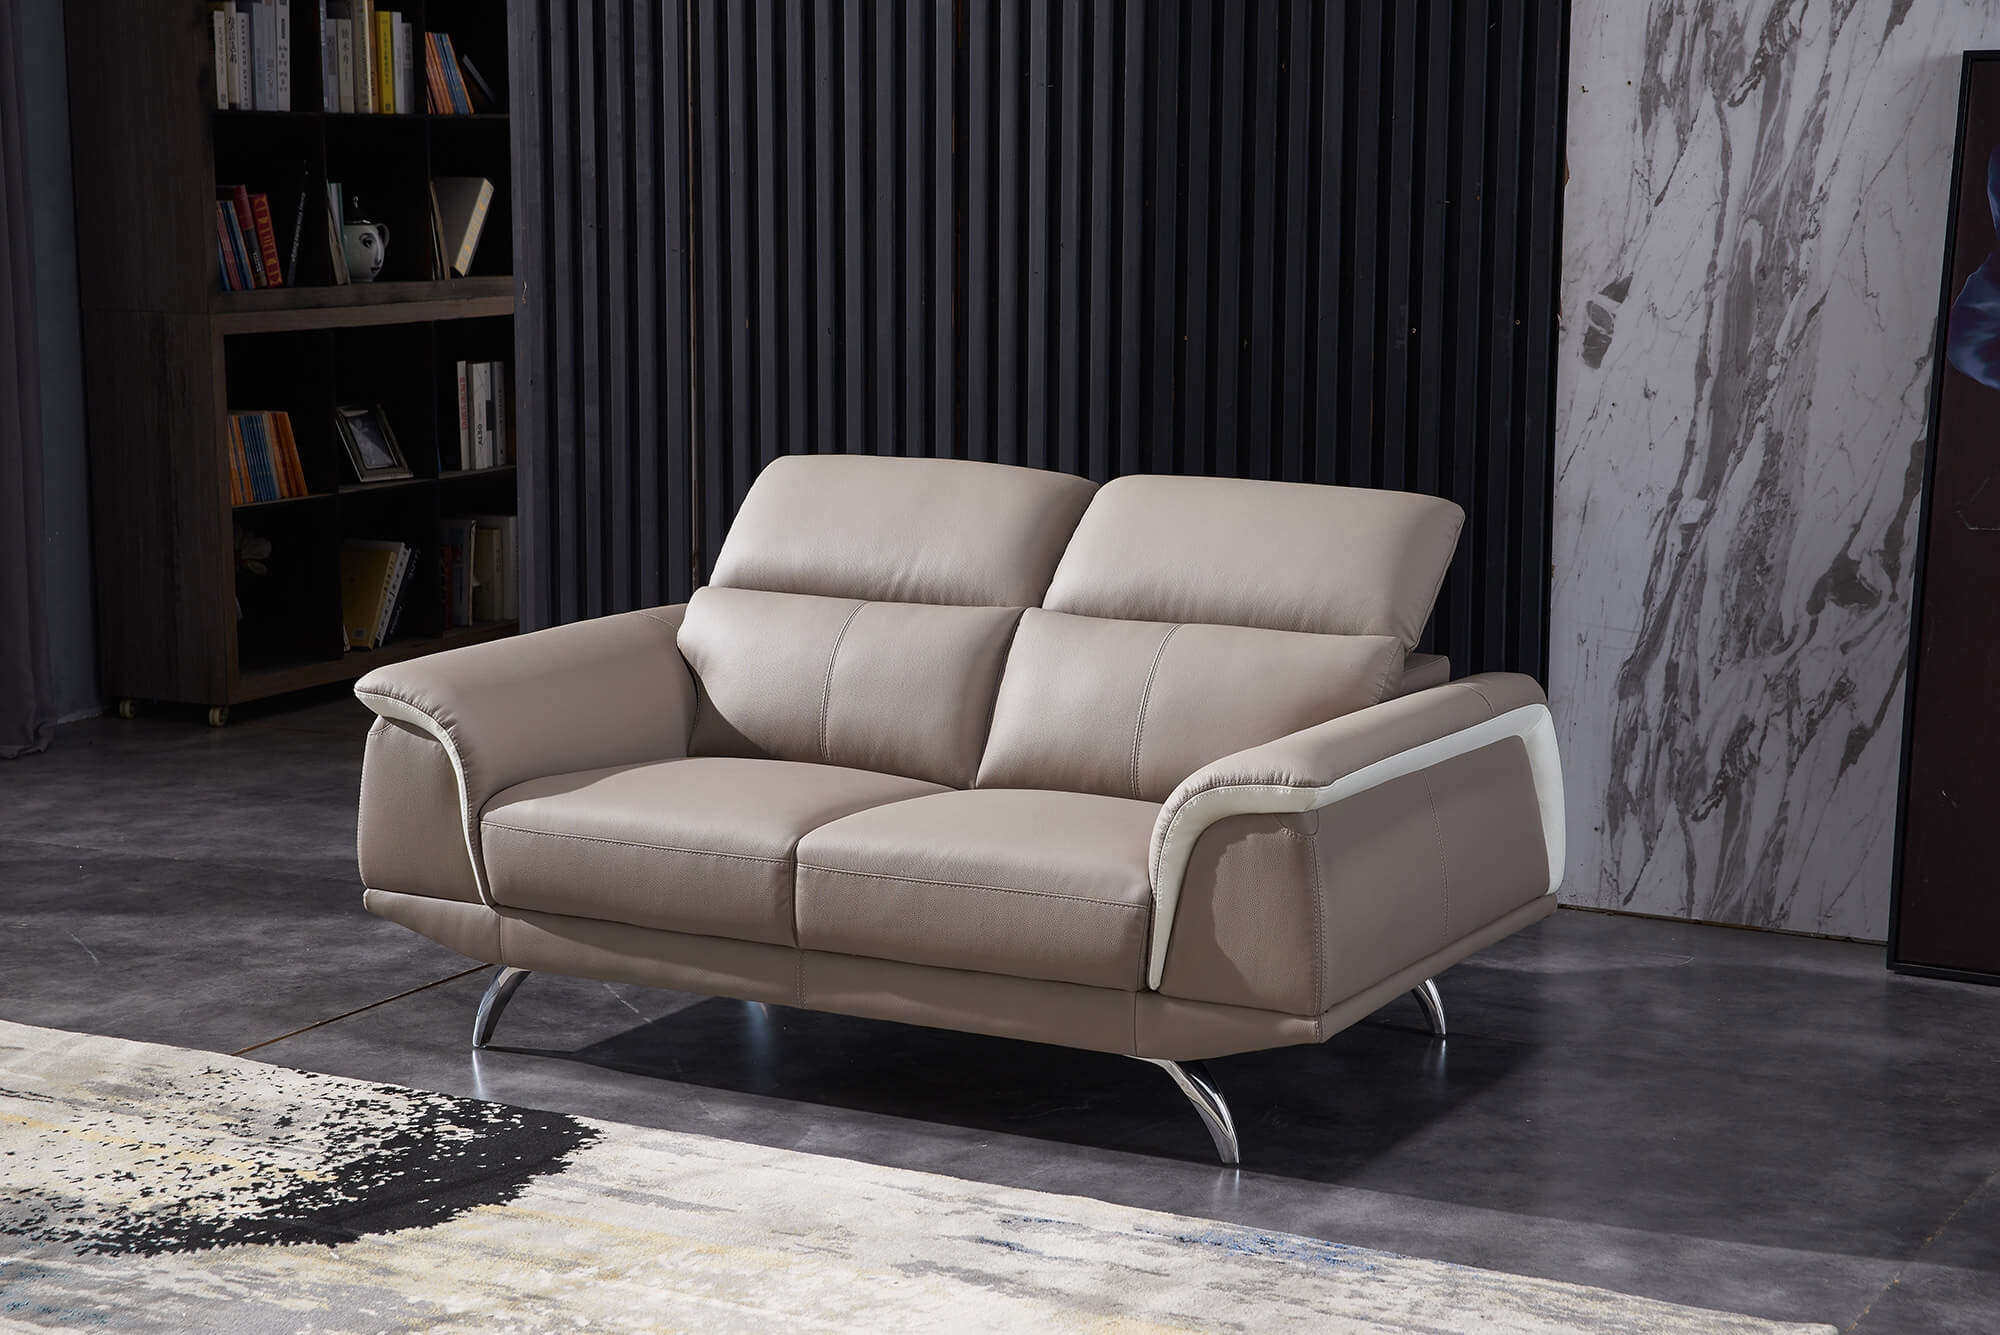 sand leather two tone 3 seater sofa detail